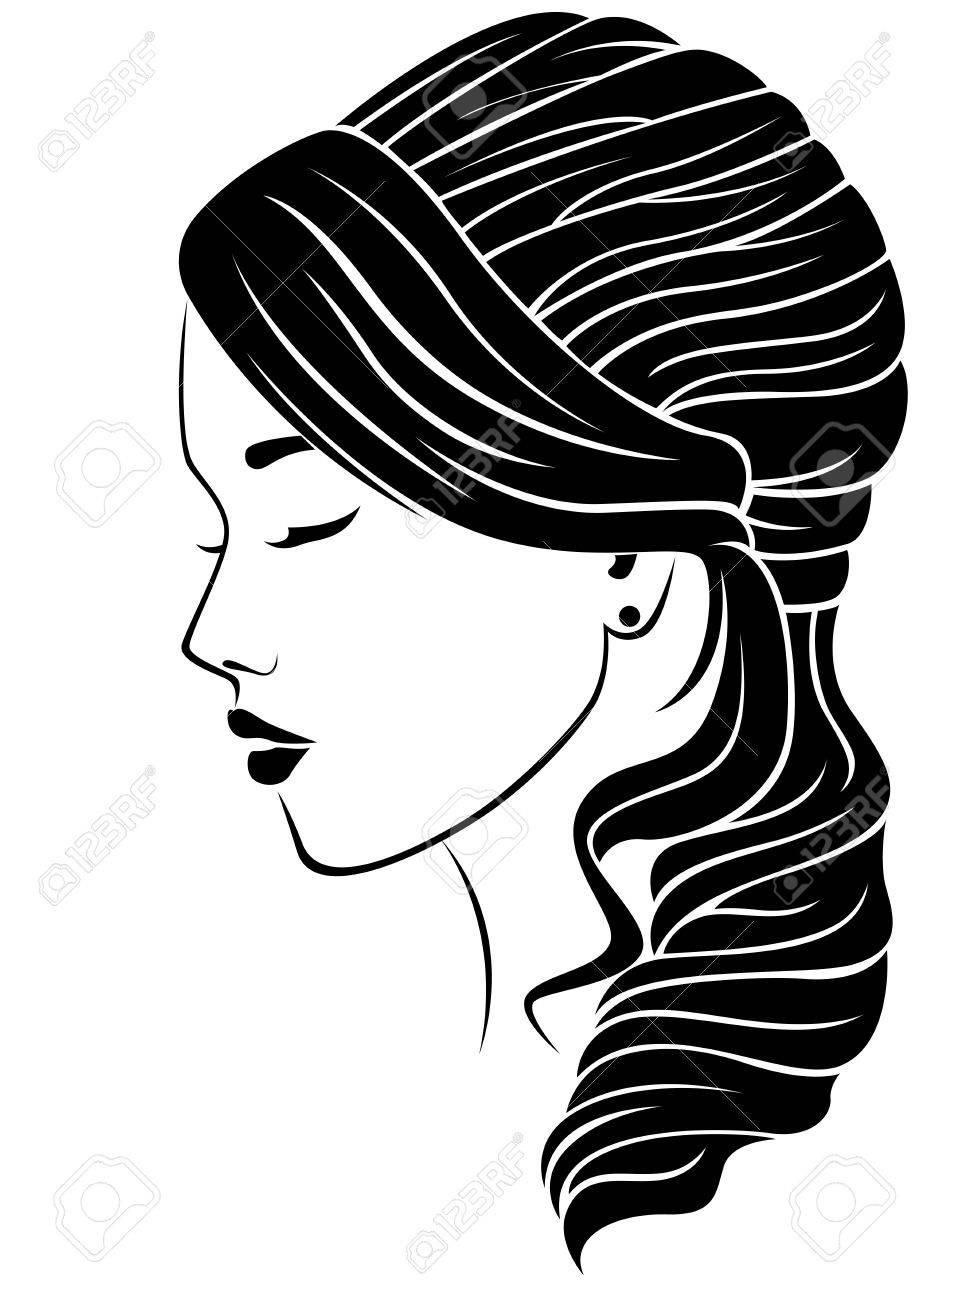 Dreamy girl with wavy hairdo, vector illustration isolated on the white background - 84586759